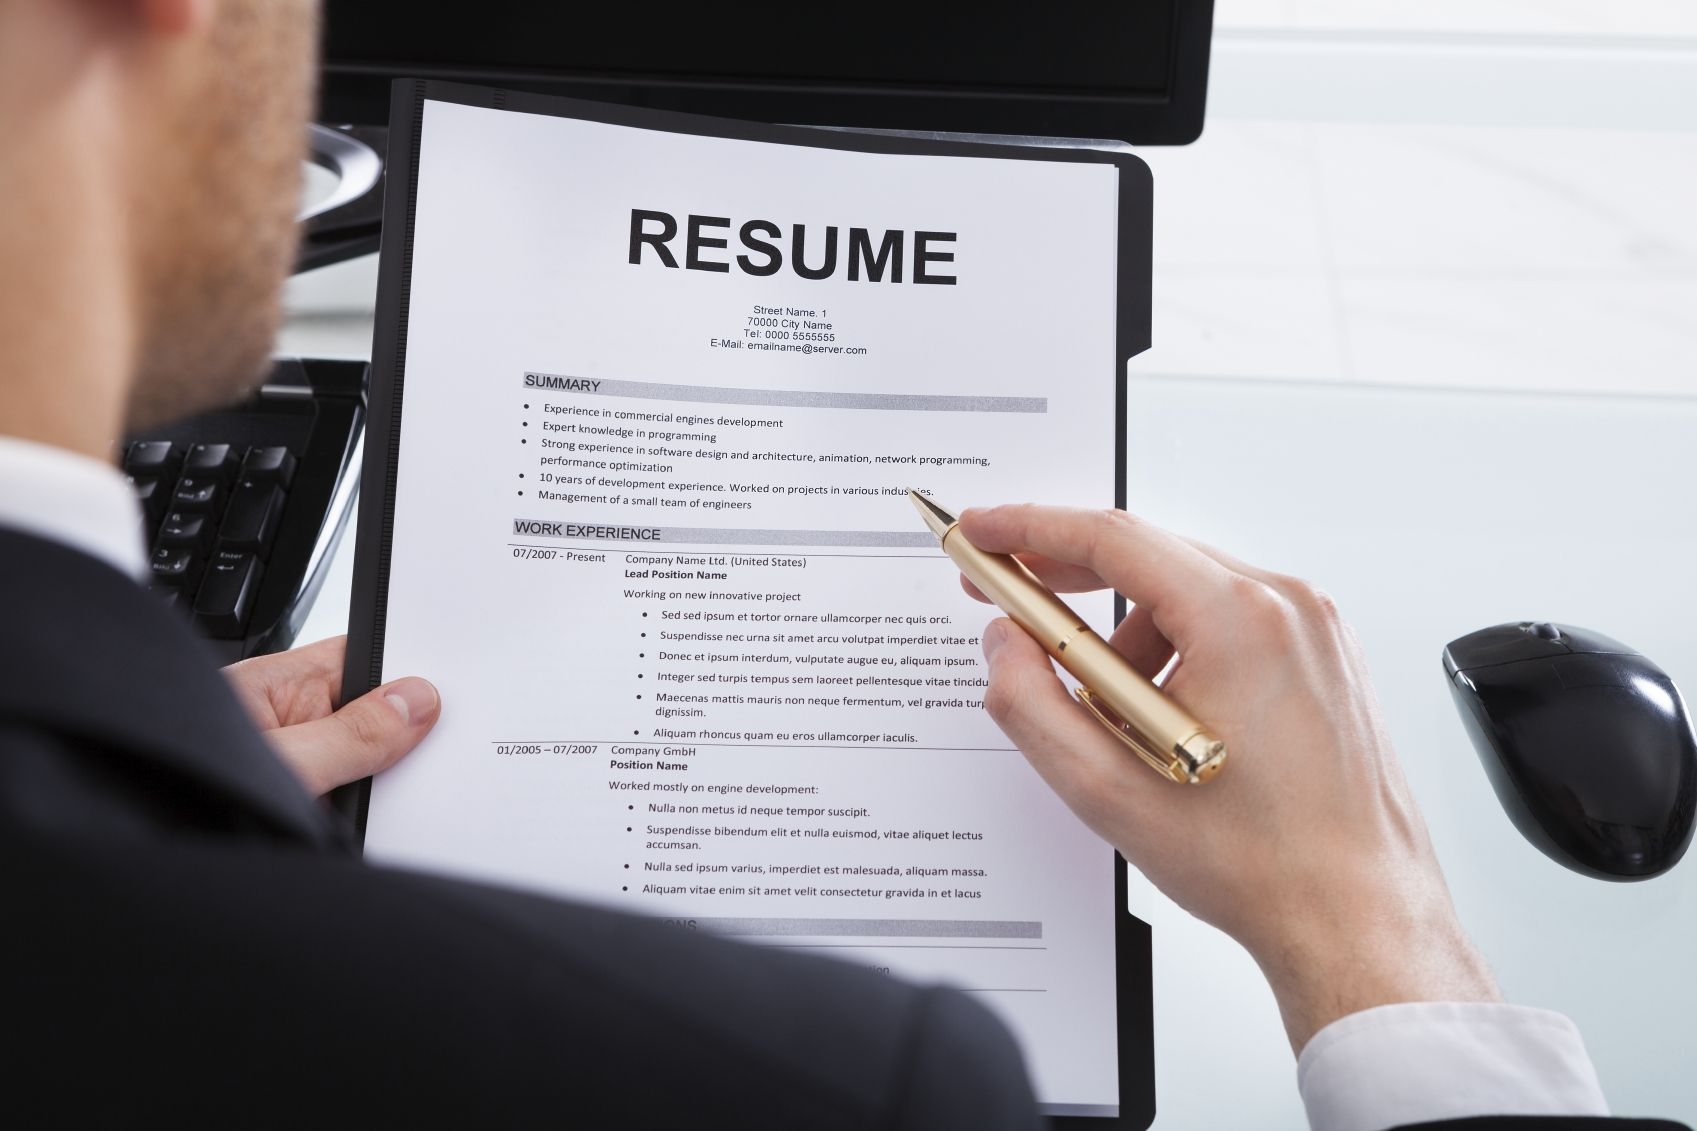 to include bullet points in resume for writing medium web developer project description Resume Points For Resume Writing